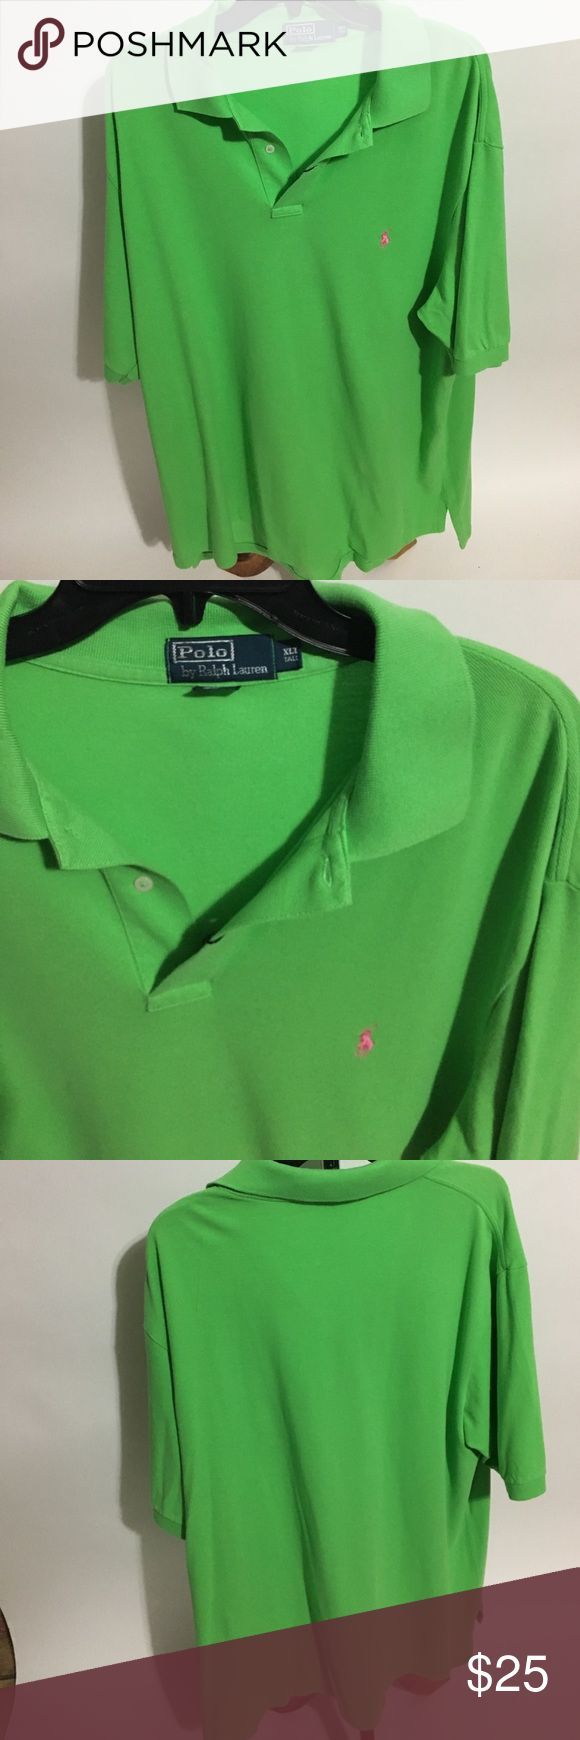 Lime green Polo by Ralph Lauren shirt Lime green Polo by Ralph Lauren shirt with pink emblem Shirts Polos